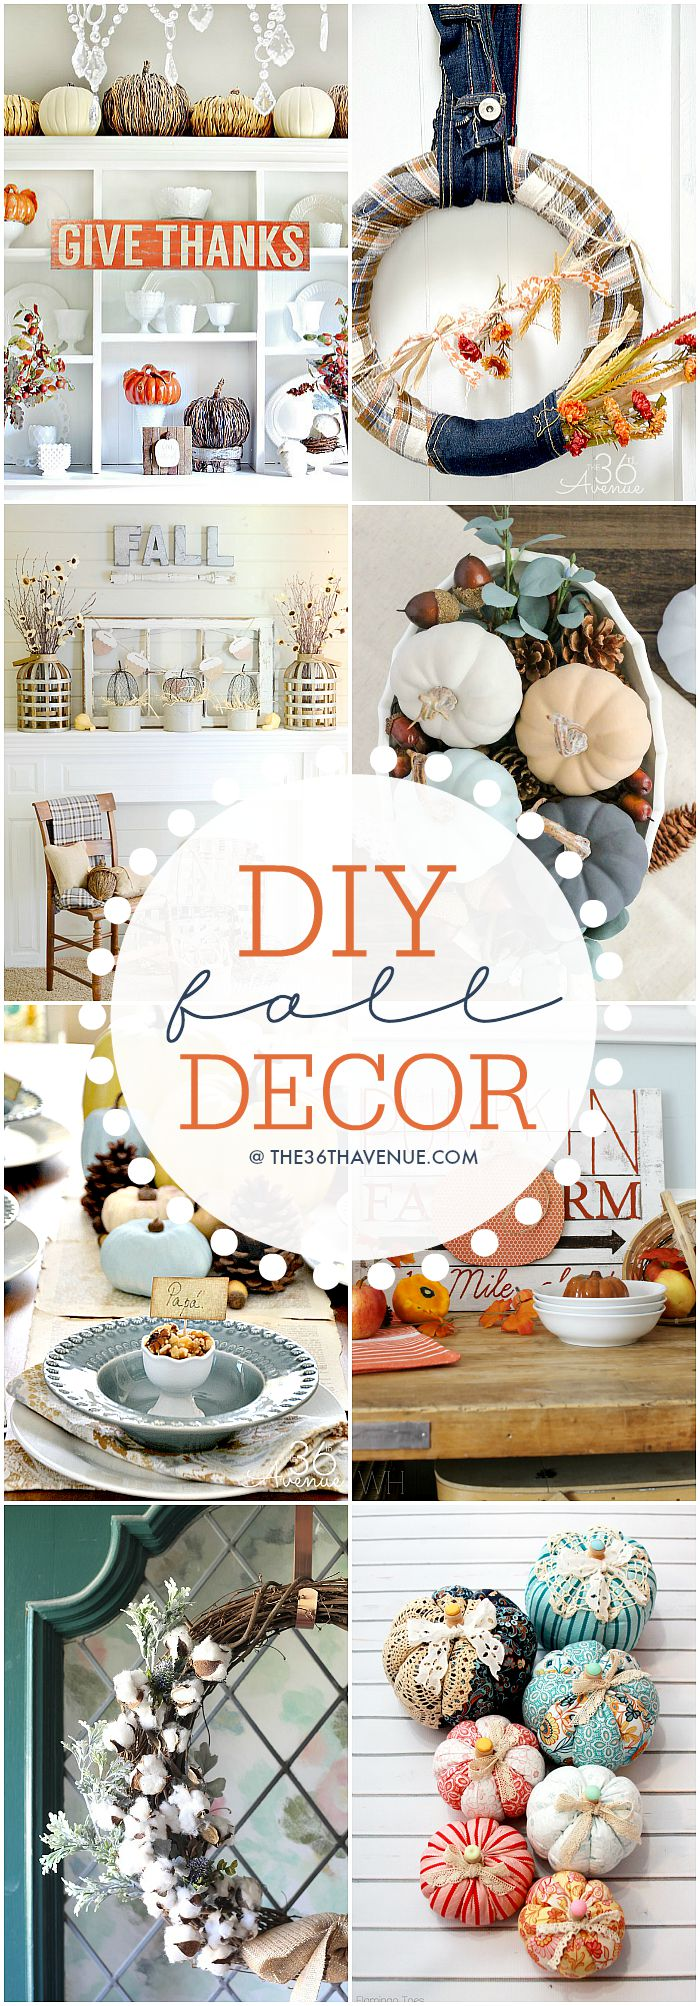 DIY Fall Decor Ideas at the36thavenue.com